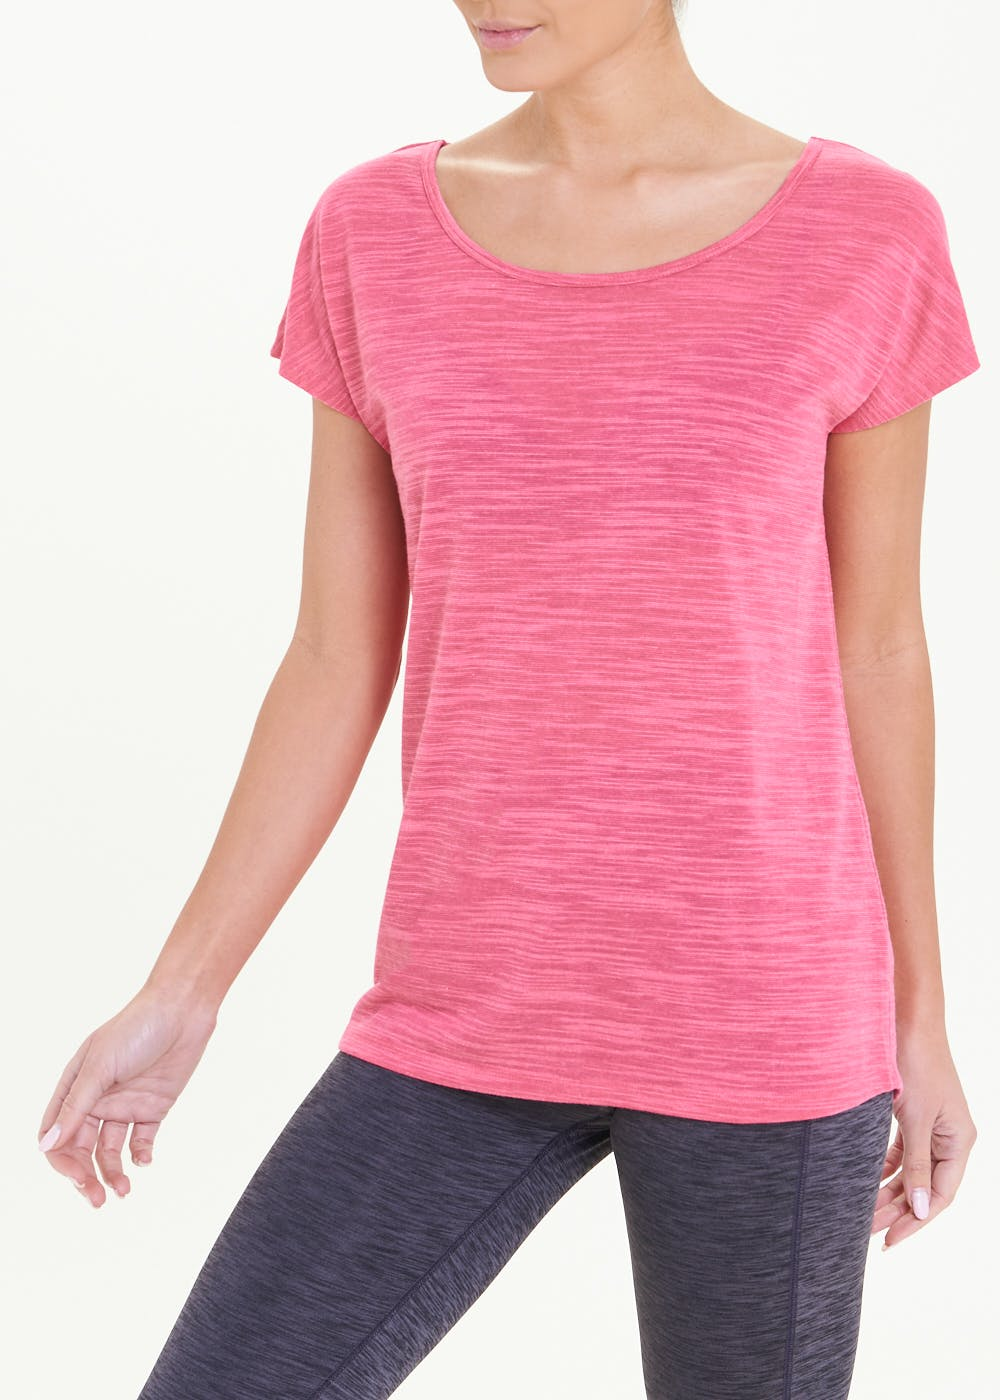 Souluxe Pink Cross Back Gym T-Shirt – Pink